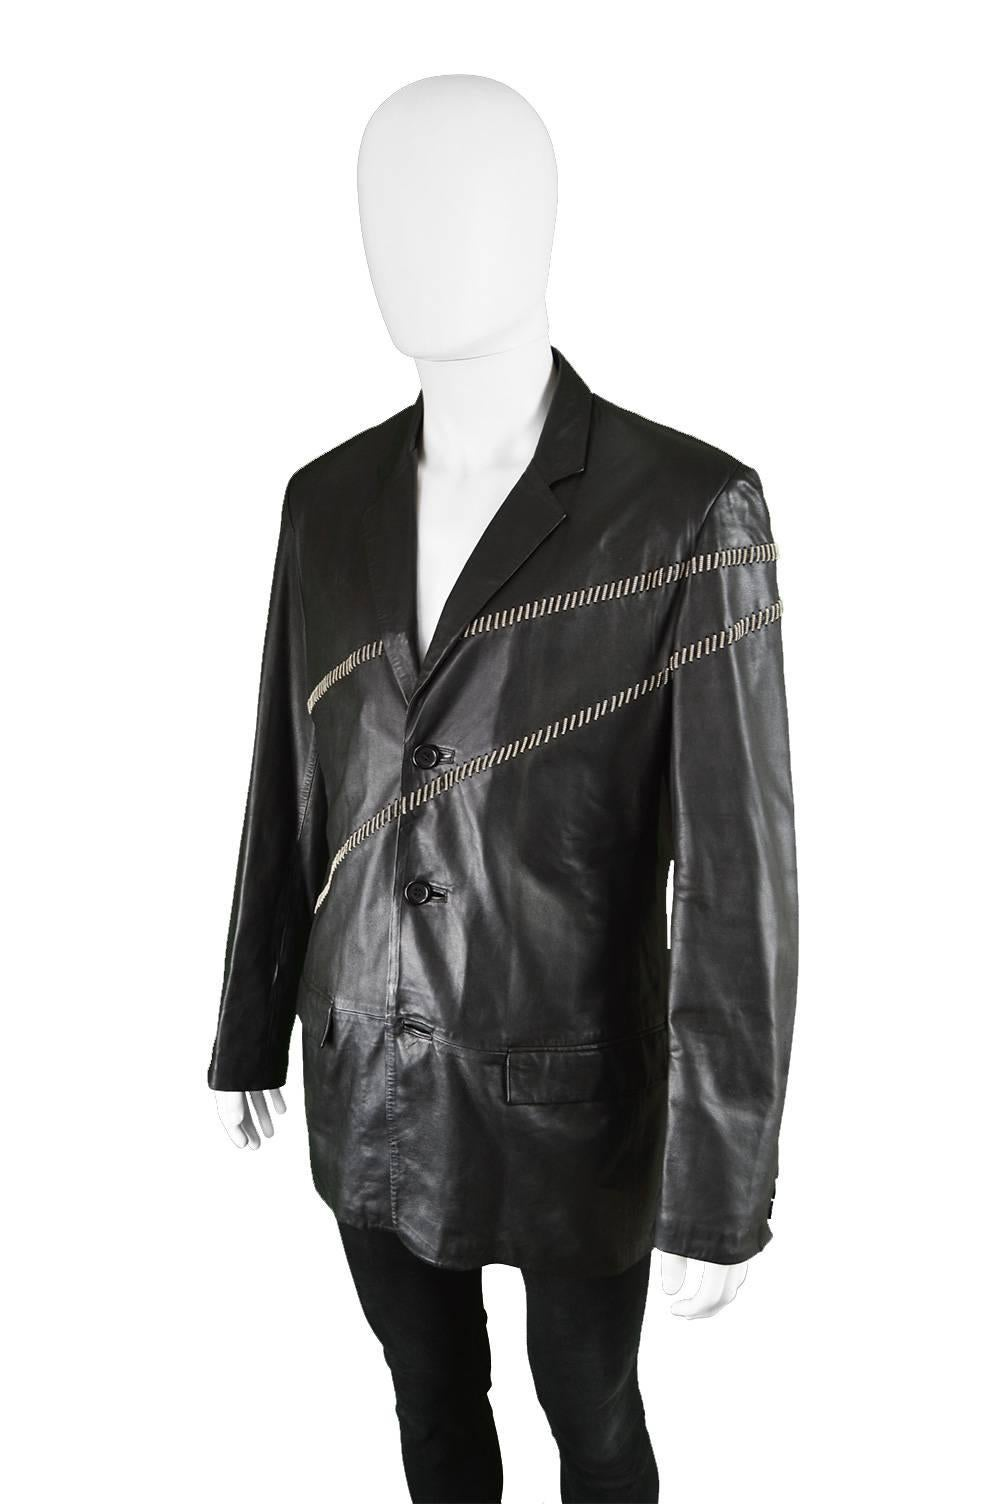 Gianni Versace Vintage Men's Leather Chain Embroidered Blazer Jacket, 1990s